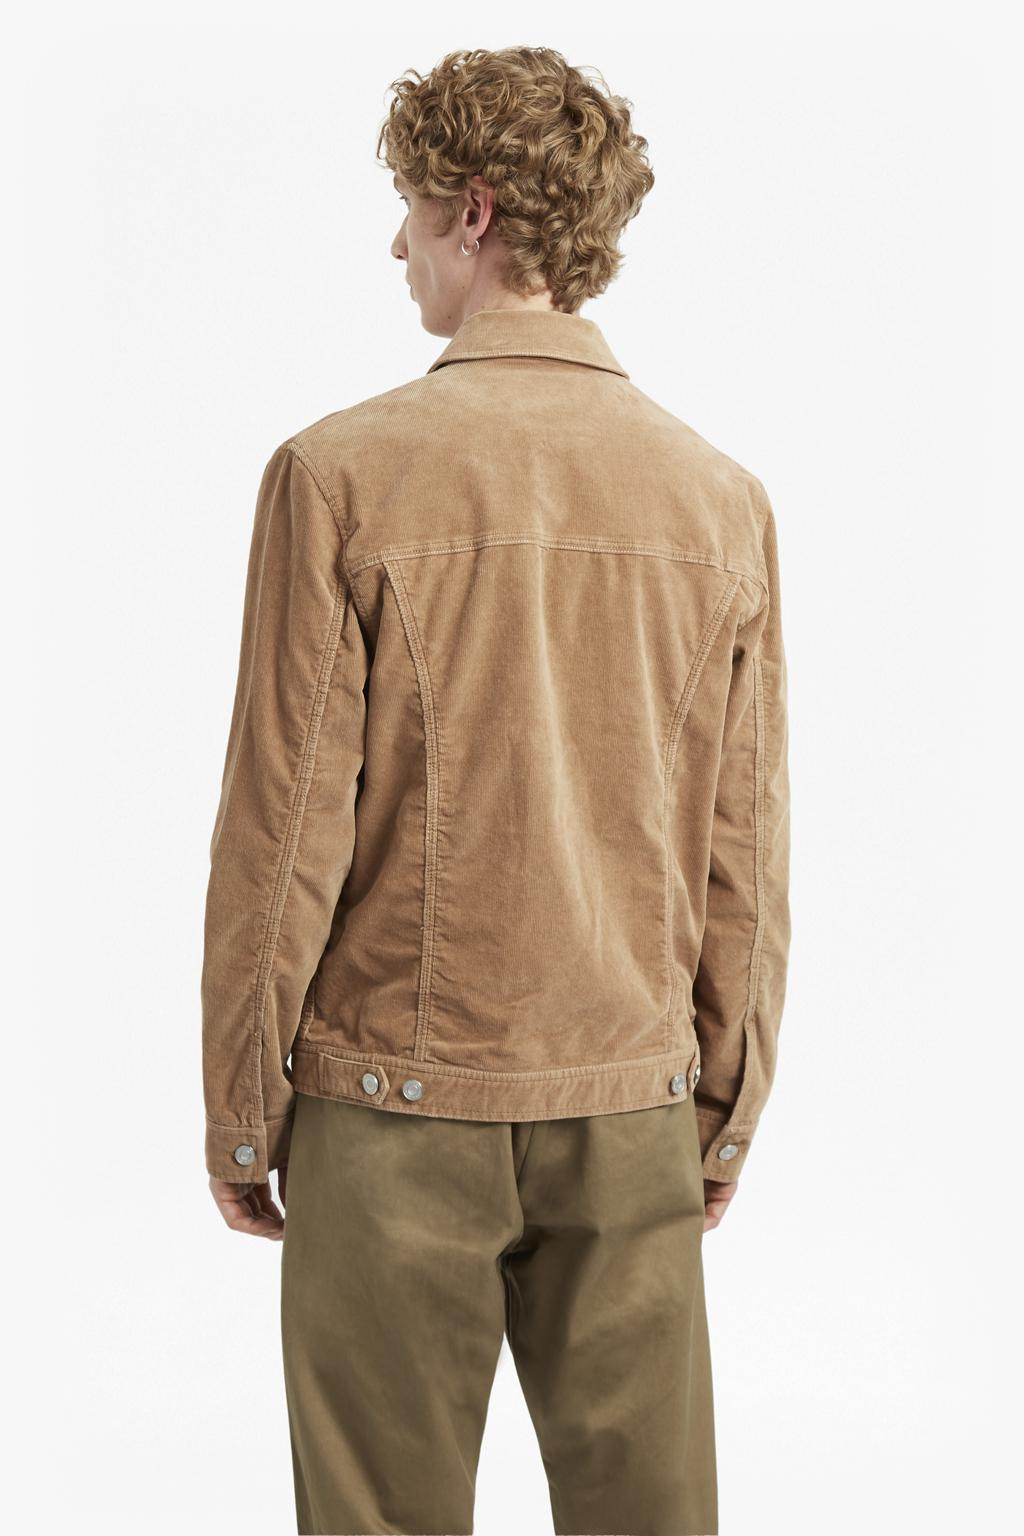 French connection cord jacket — pic 1